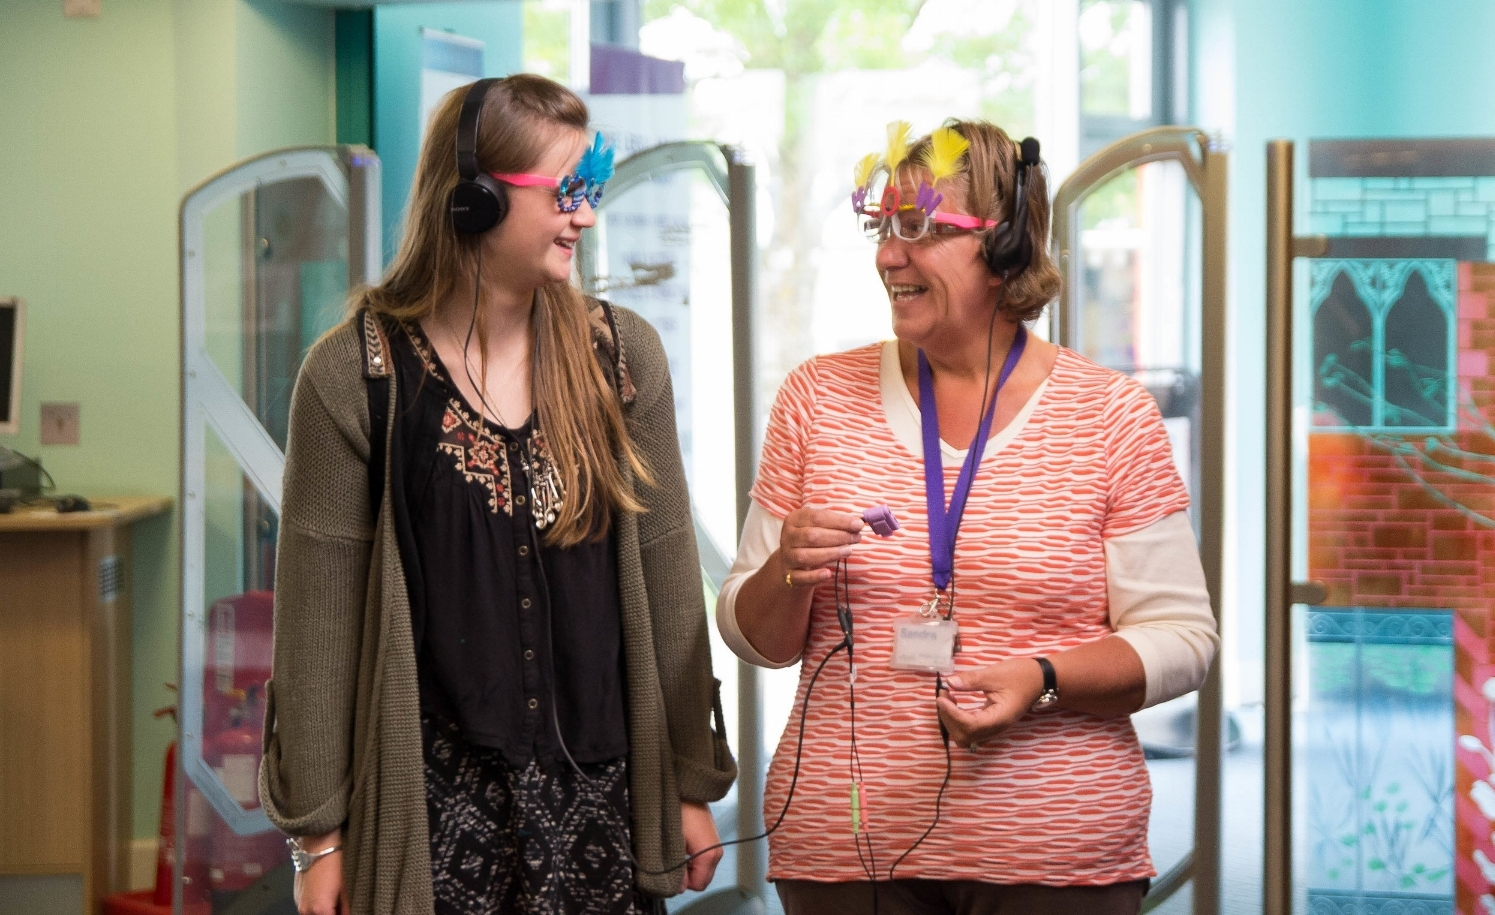 Two audience members take an audio tour of the library